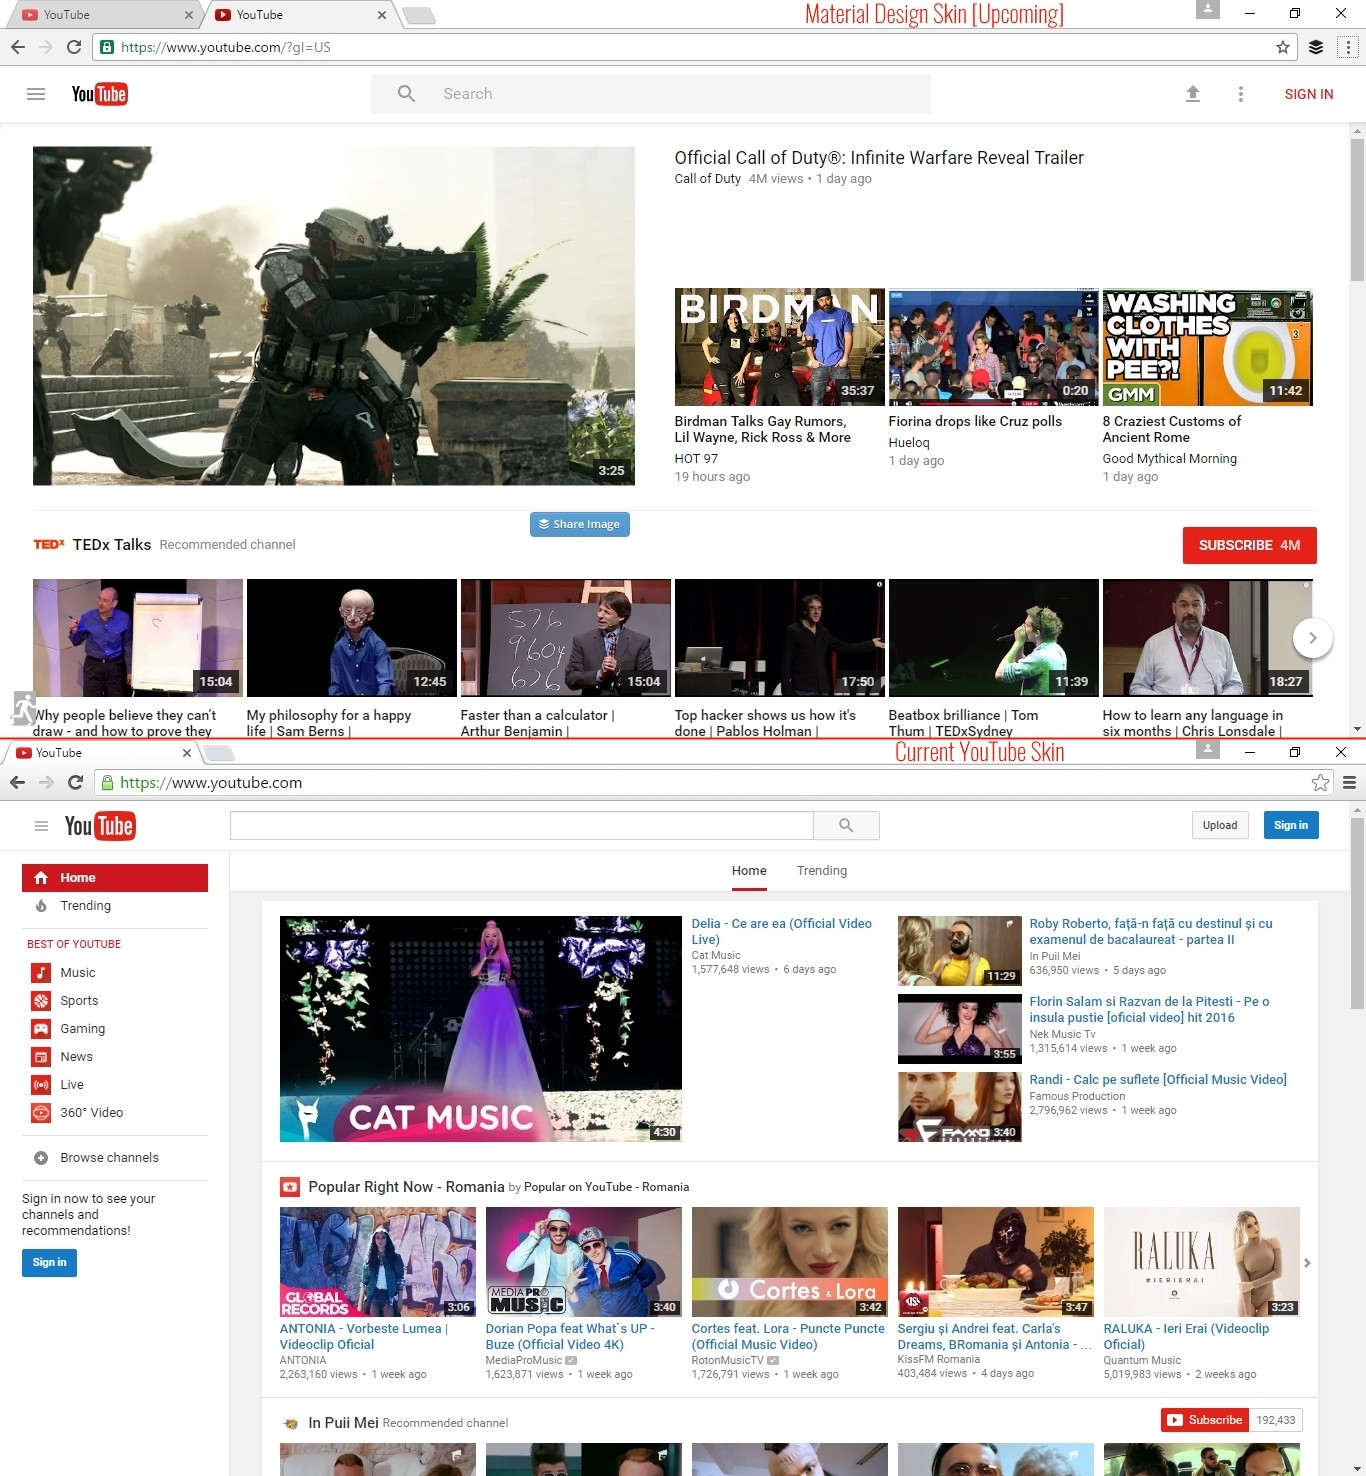 Here\'s How to Enable YouTube\'s Upcoming Material Design Skin